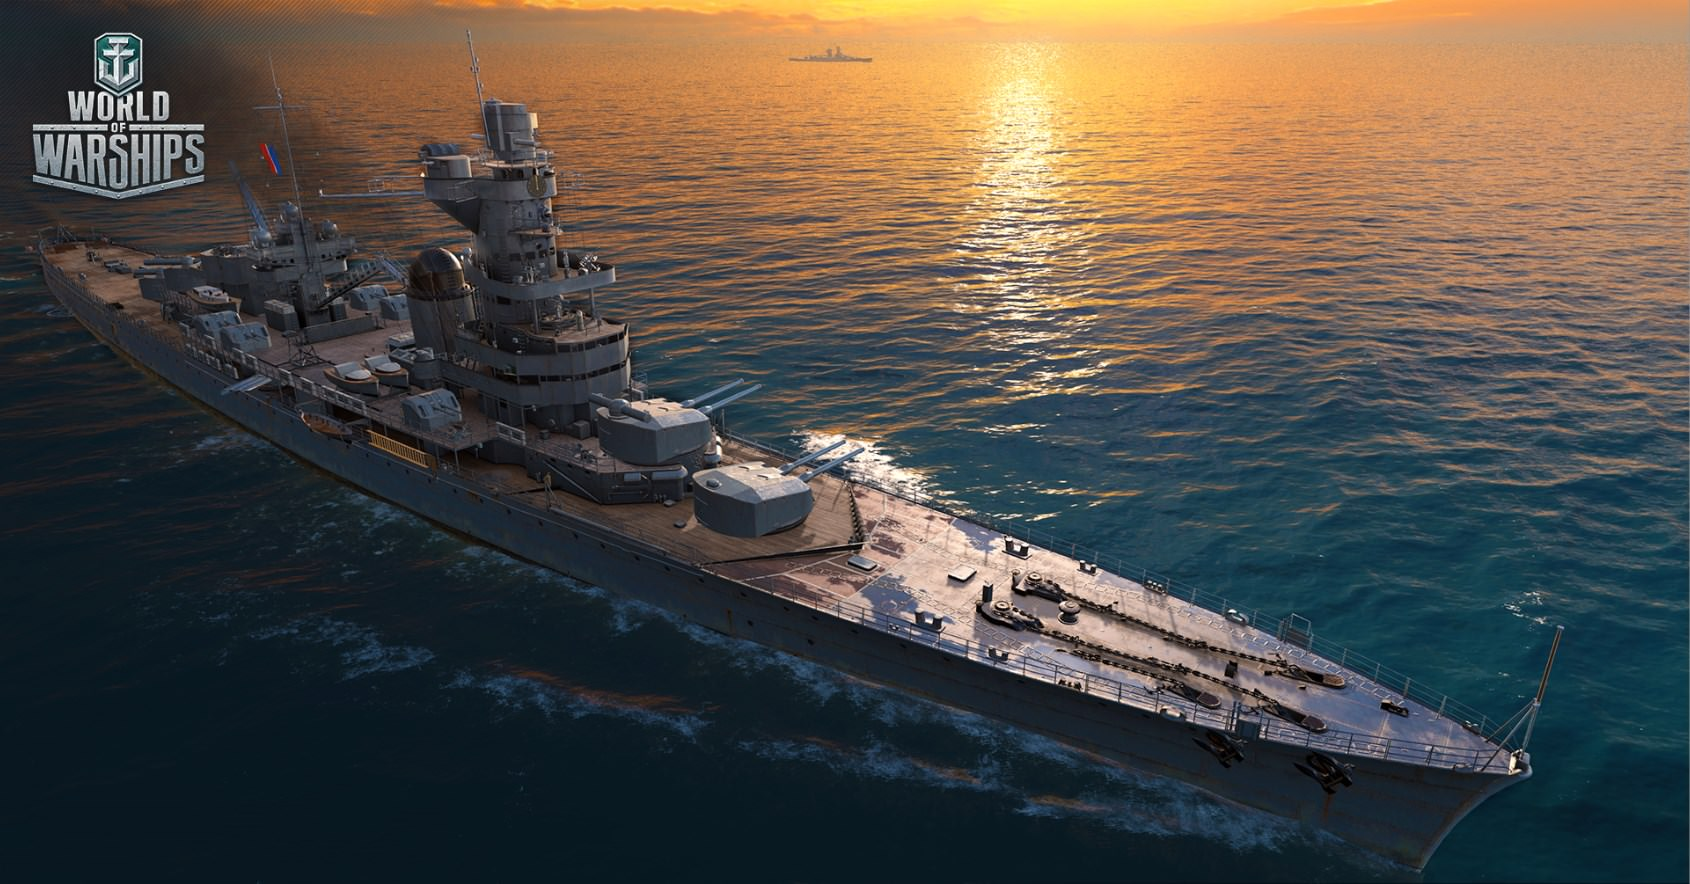 World of Warships Best Cruiser Lines, Ranked Weakest to